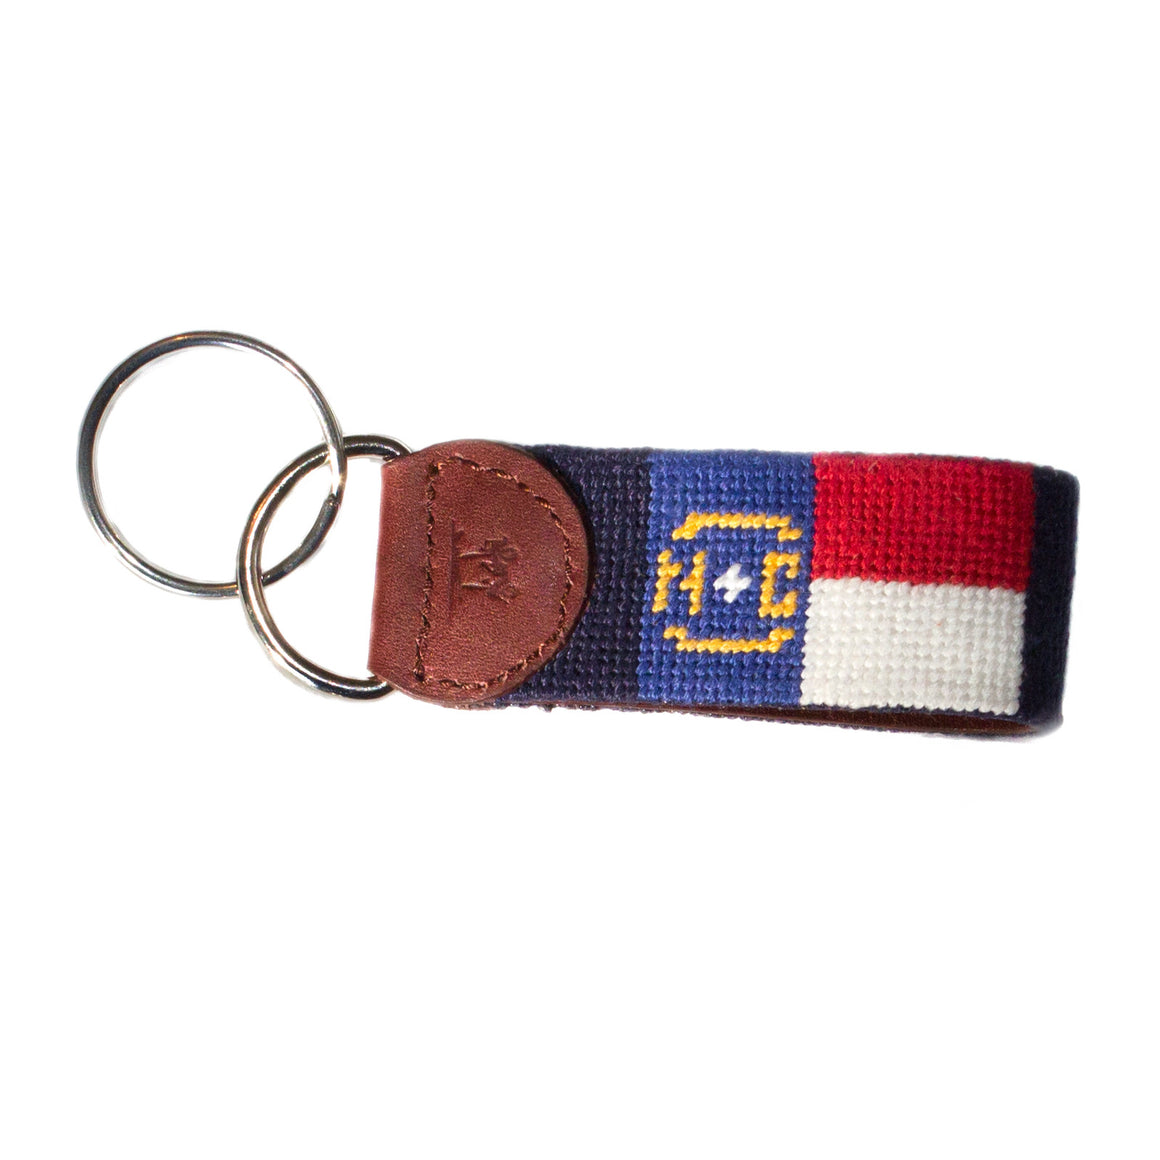 North Carolina Flag Key Fob